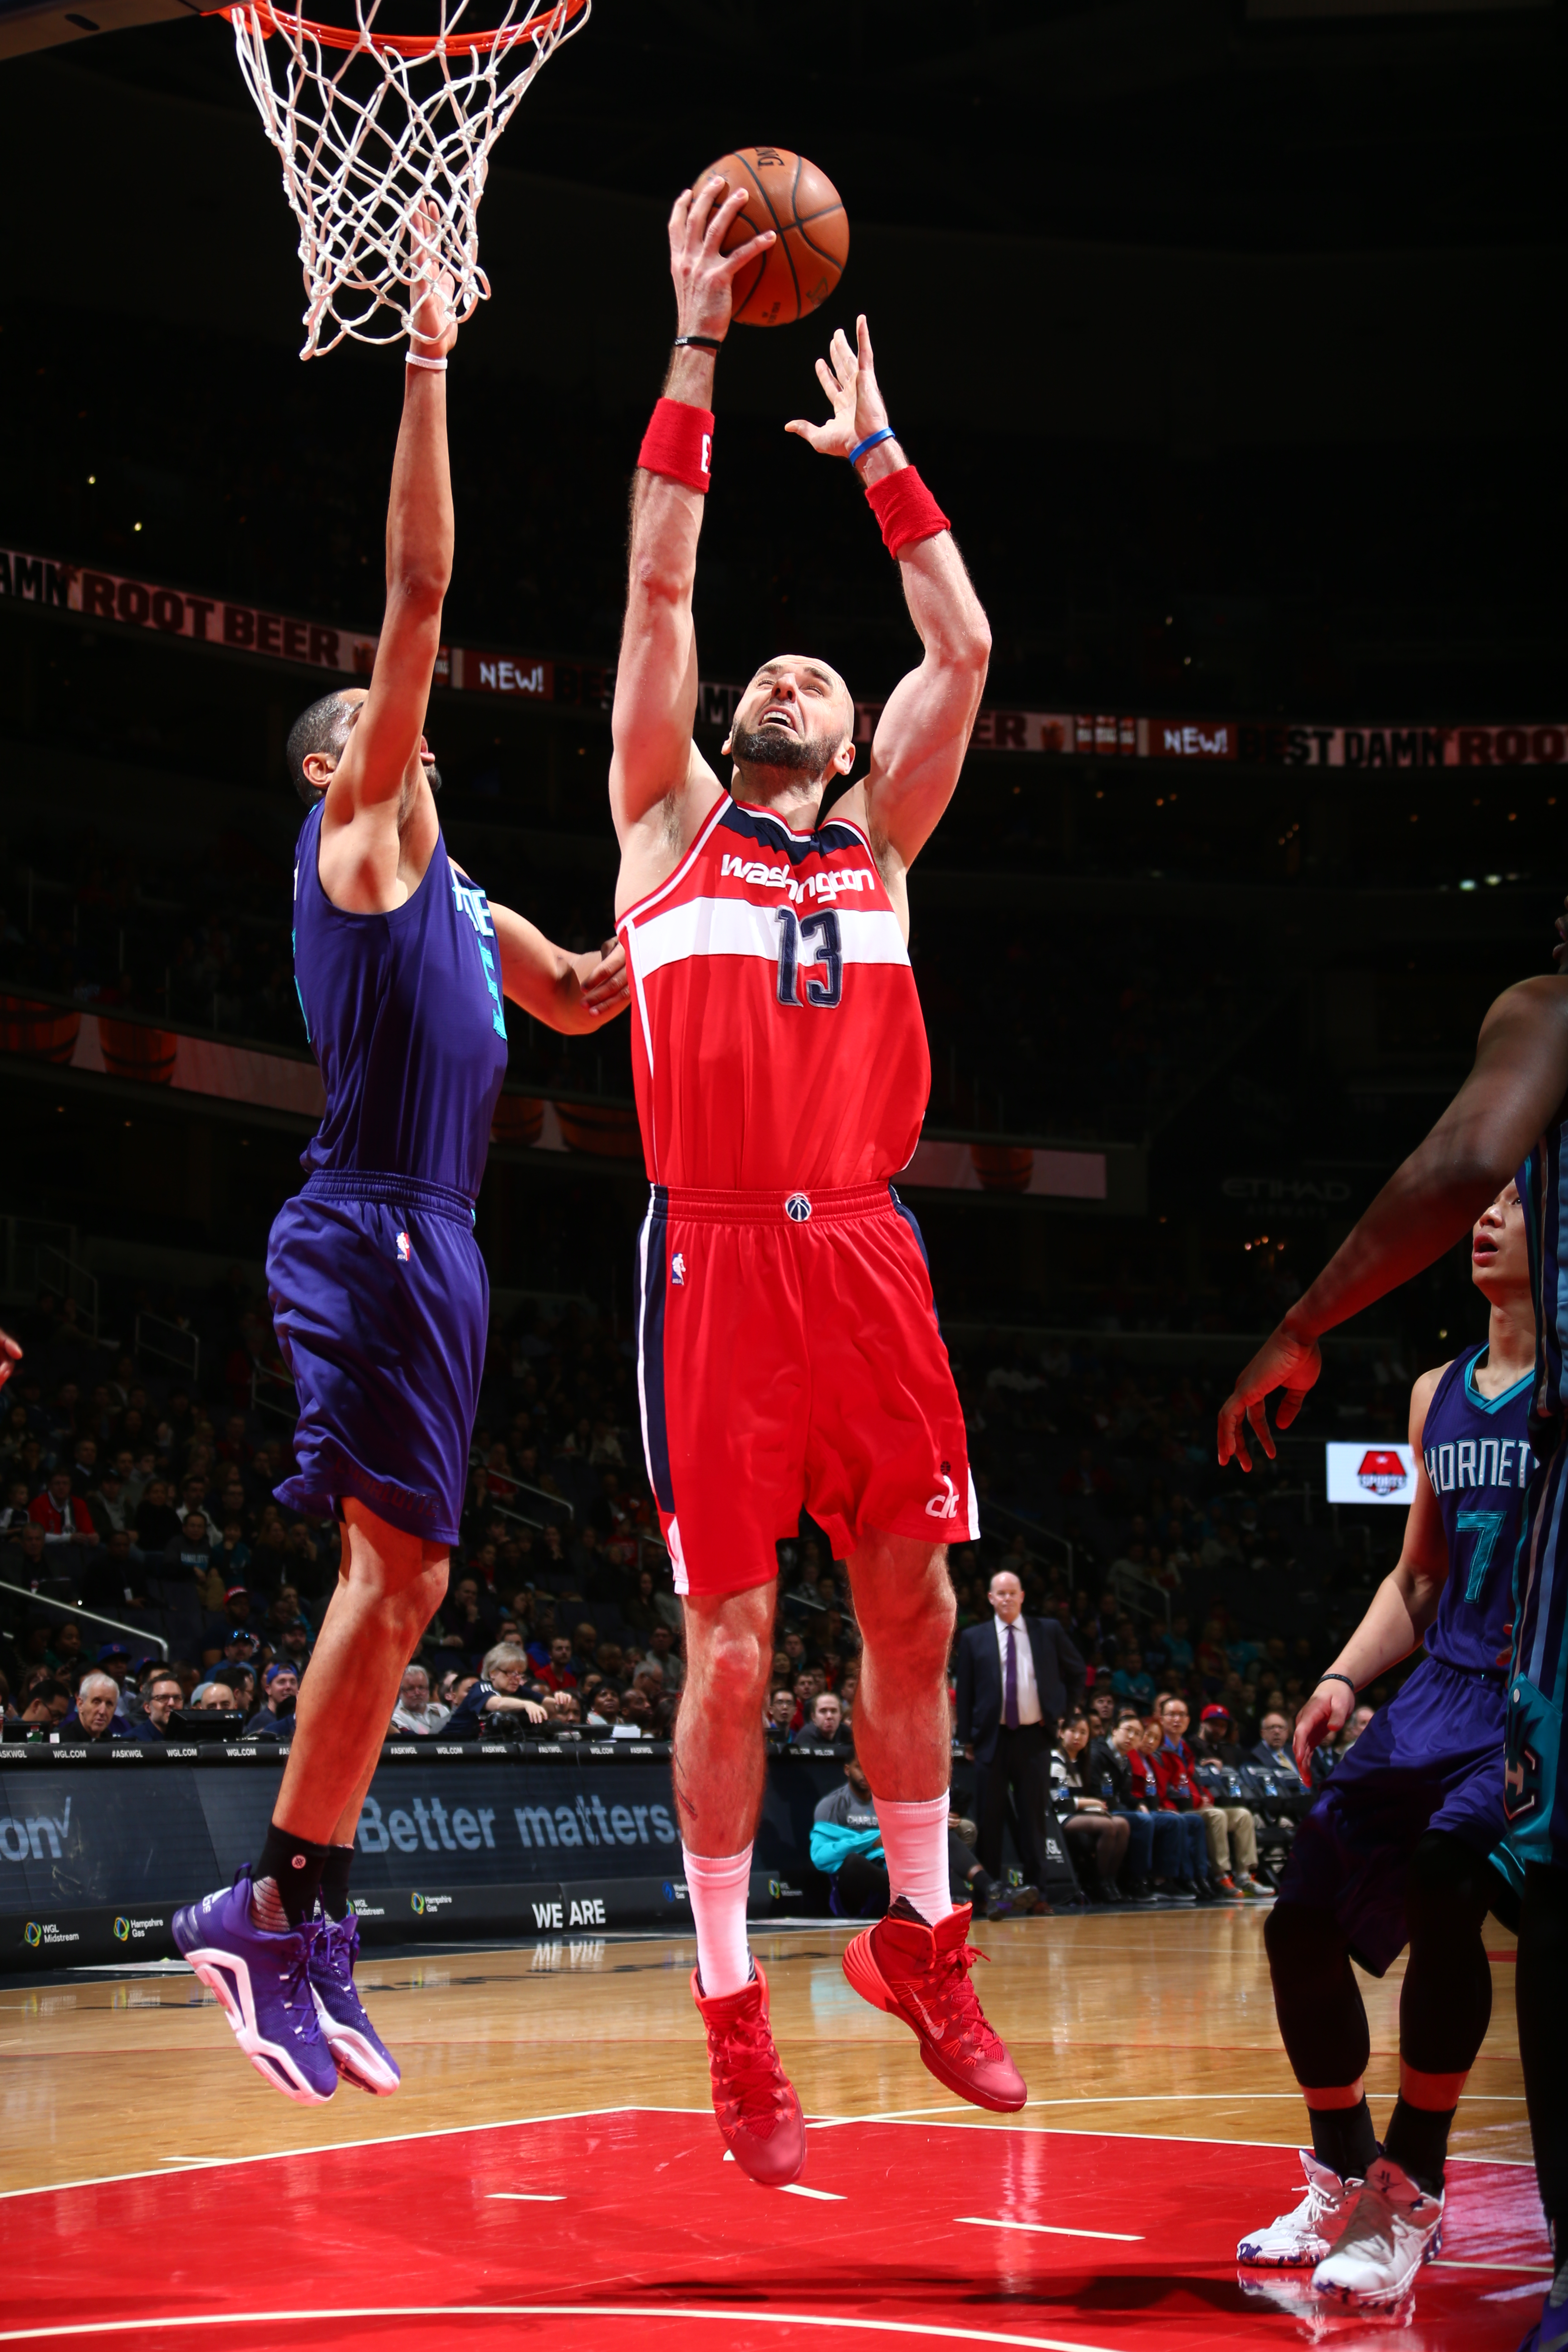 WASHINGTON, DC - APRIL 10:  Marcin Gortat #13 of the Washington Wizards shoots the ball against the Charlotte Hornets on April 10, 2016 at Verizon Center in Washington, DC. (Photo by Ned Dishman/NBAE via Getty Images)